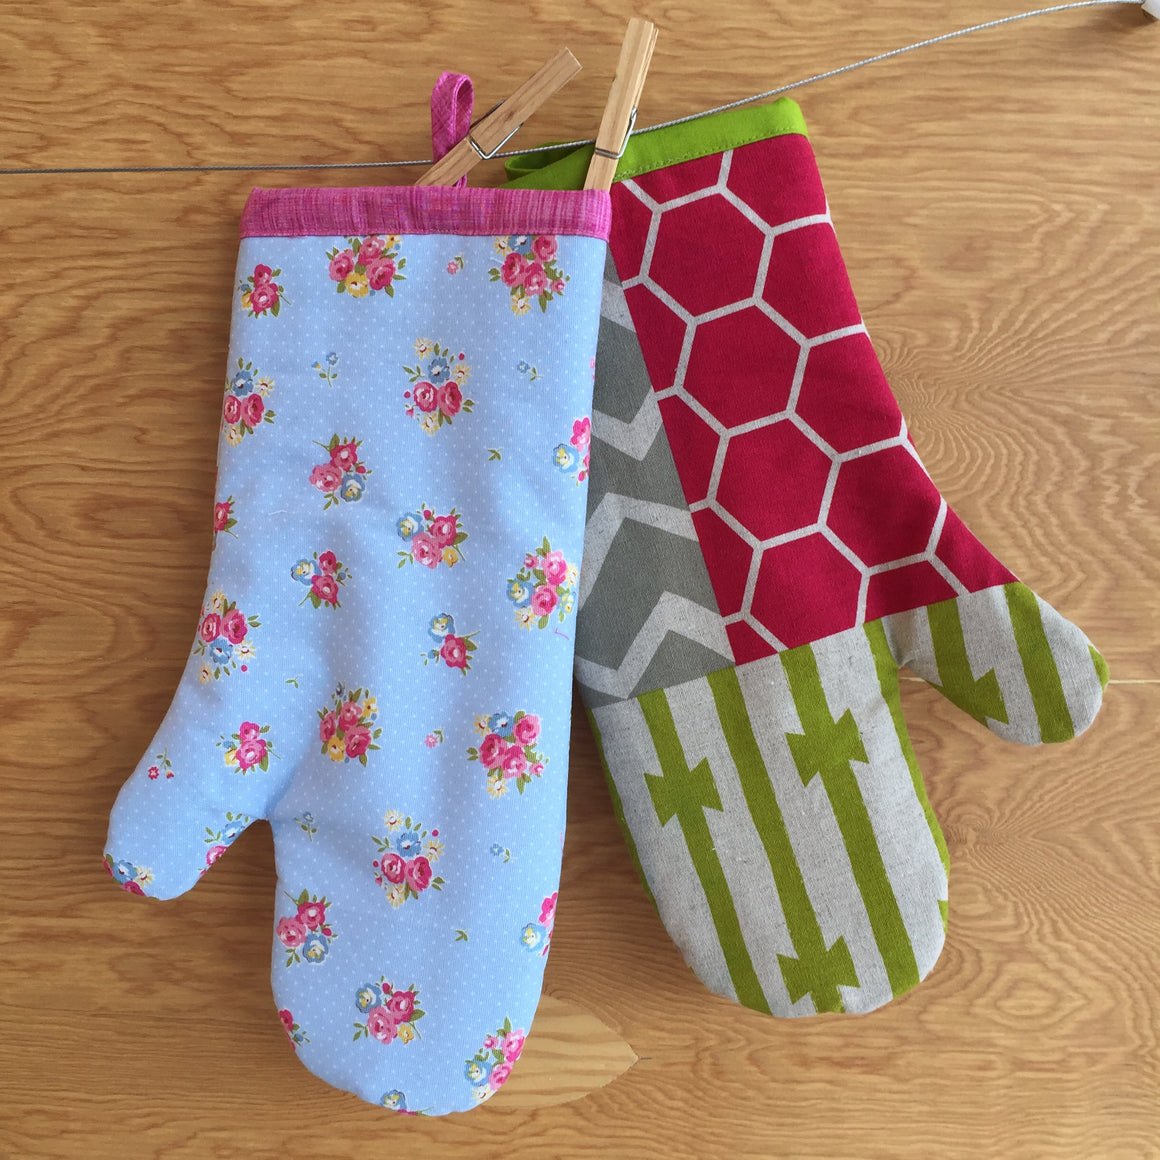 Handmade Holidays - Oven Mitts - November 7th